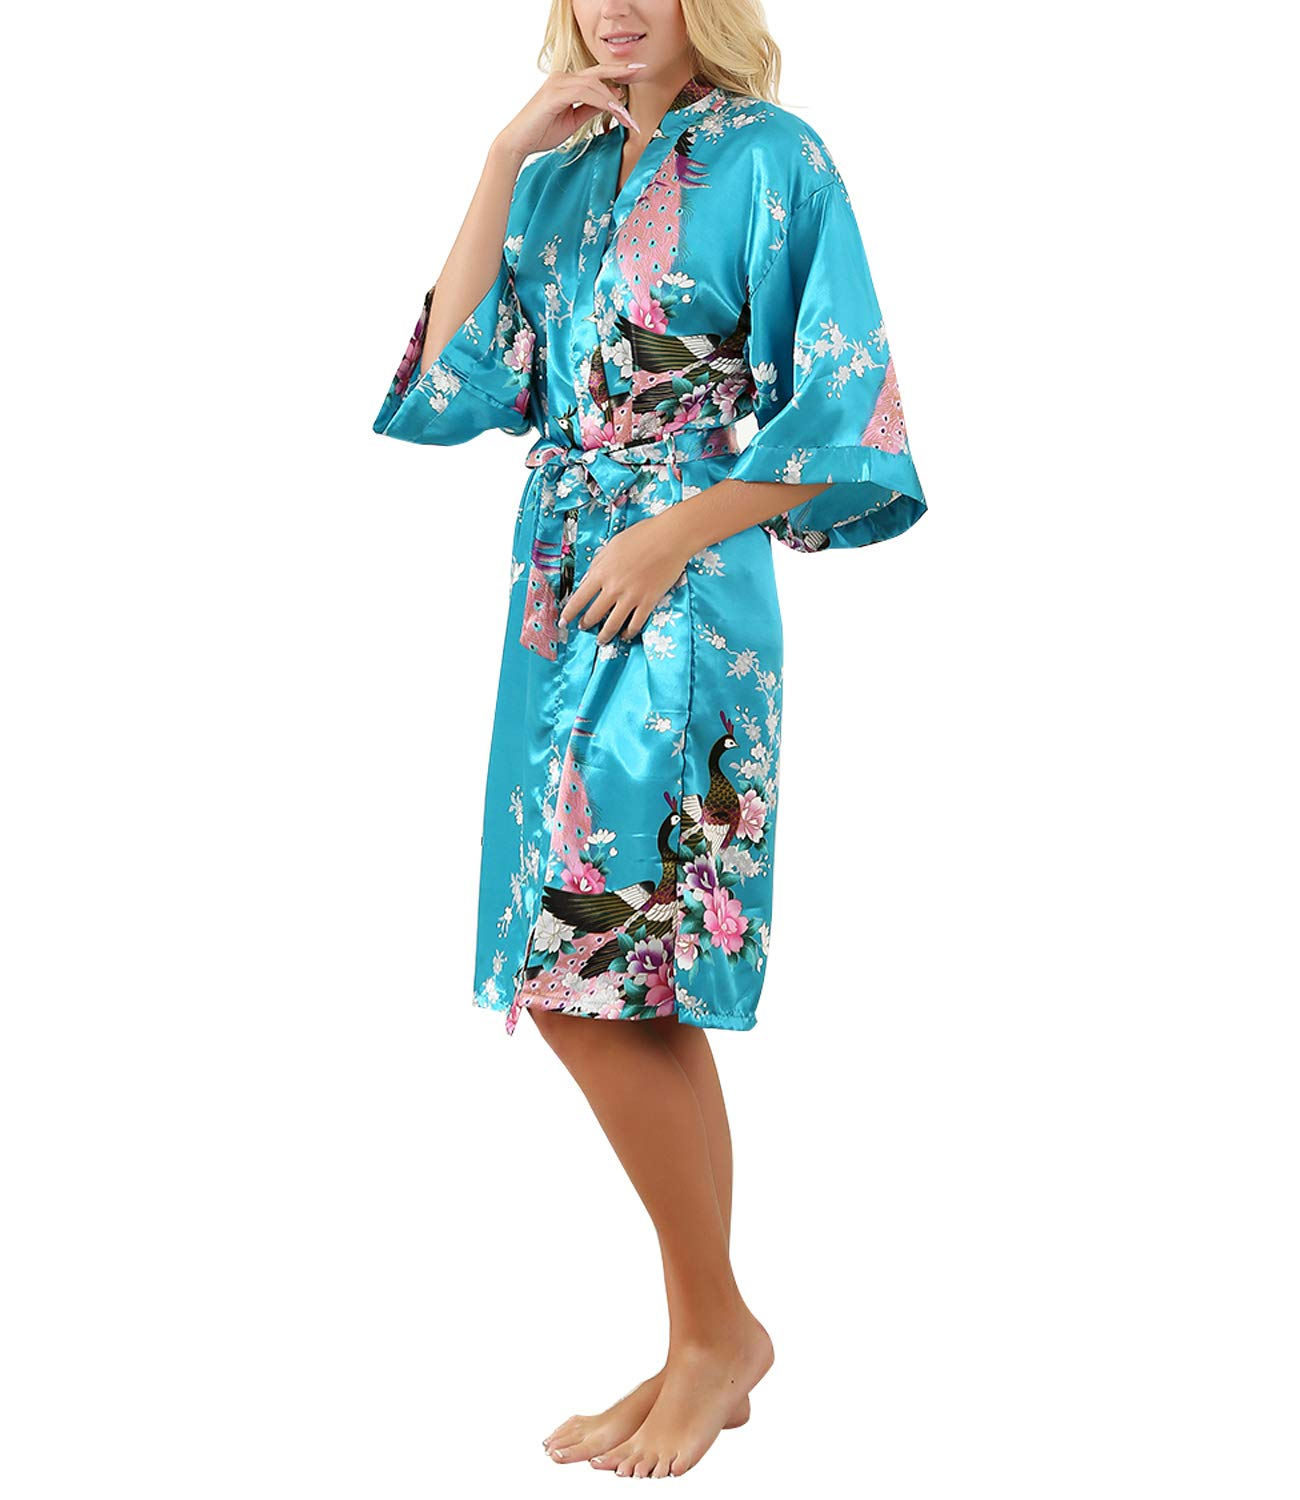 Plus Size Satin Kimono Robe for Women Full Length Silk Printed Peacock Robe Long for Wedding Bridesmaid Party